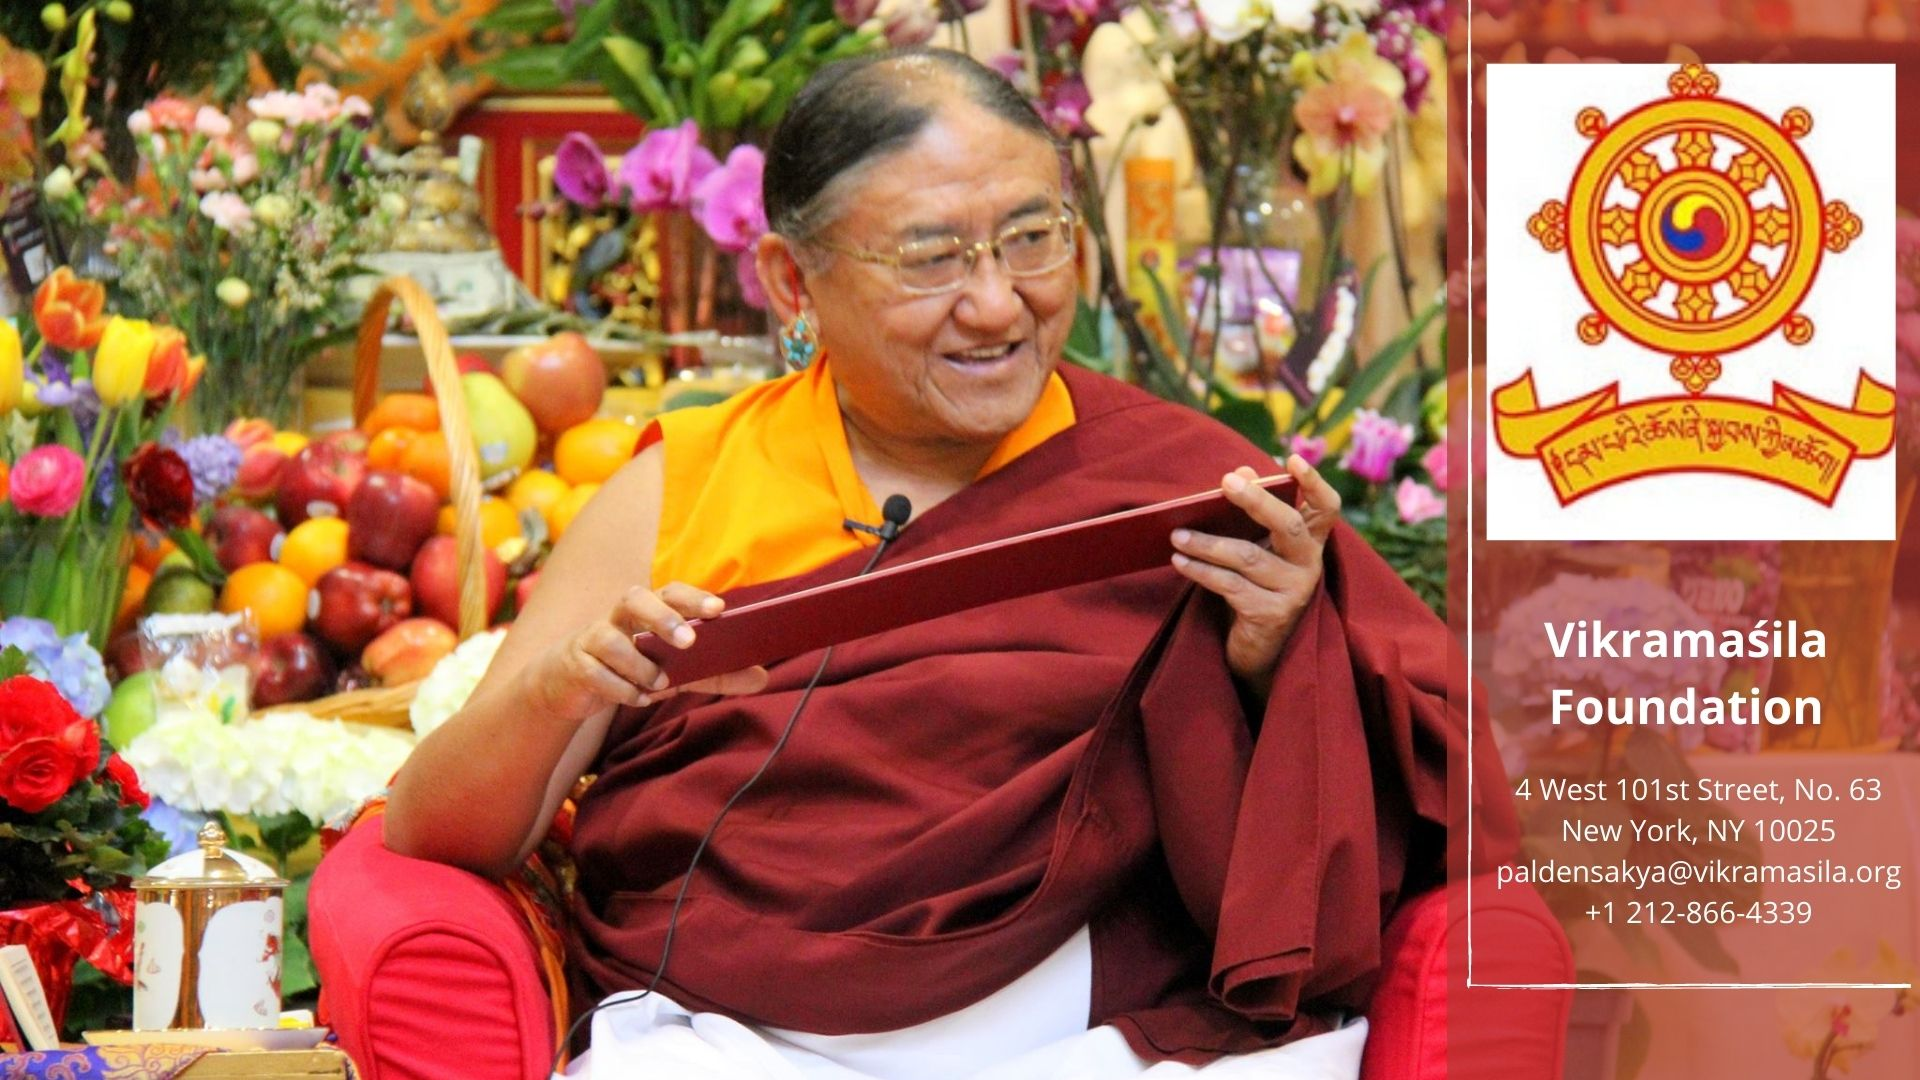 SAMANTHABADRA PRAYER WITH H.H. SAKYA TRICHEN RINPOCHE